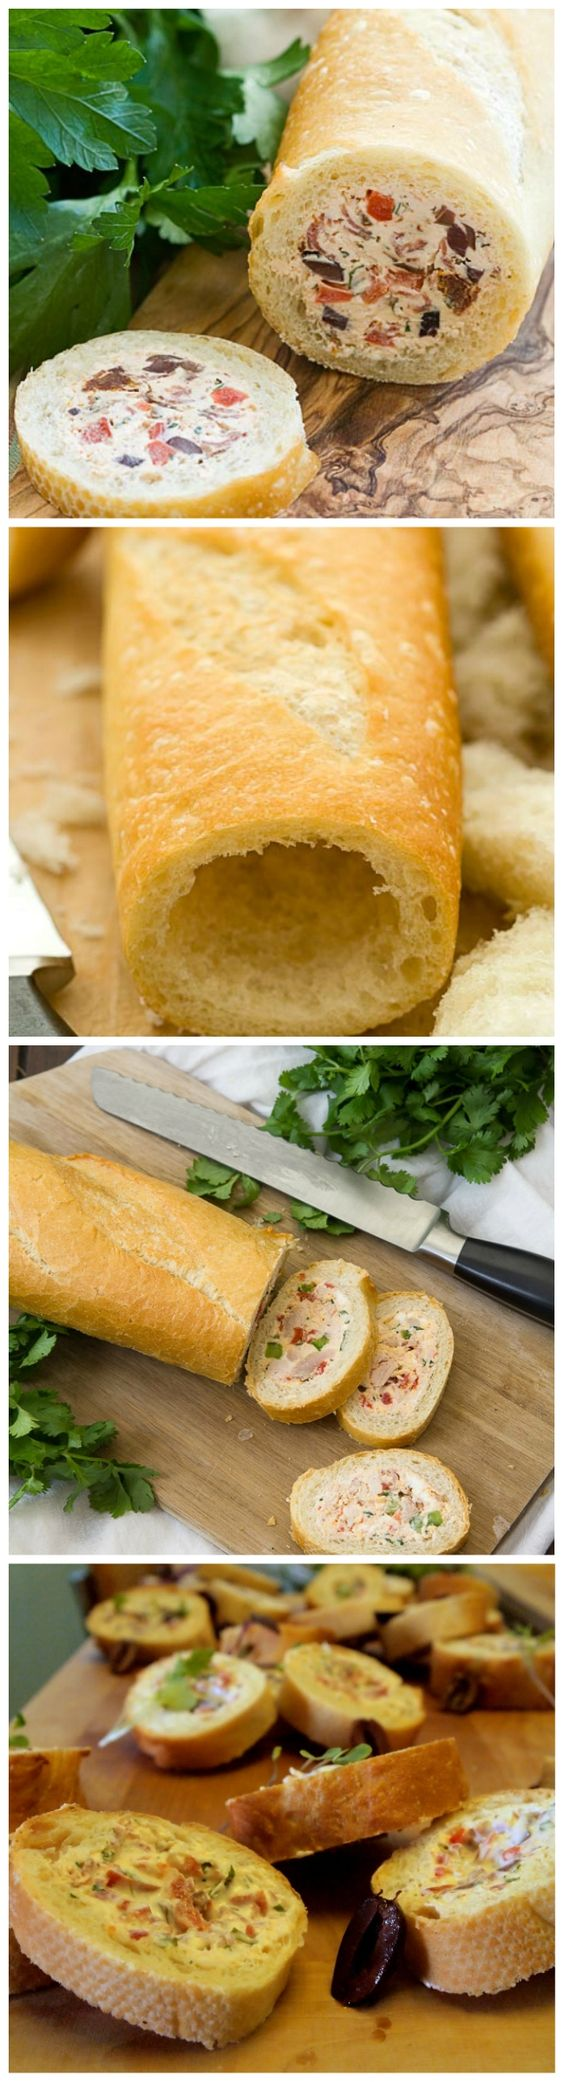 Stuffed Baguette Recipe: